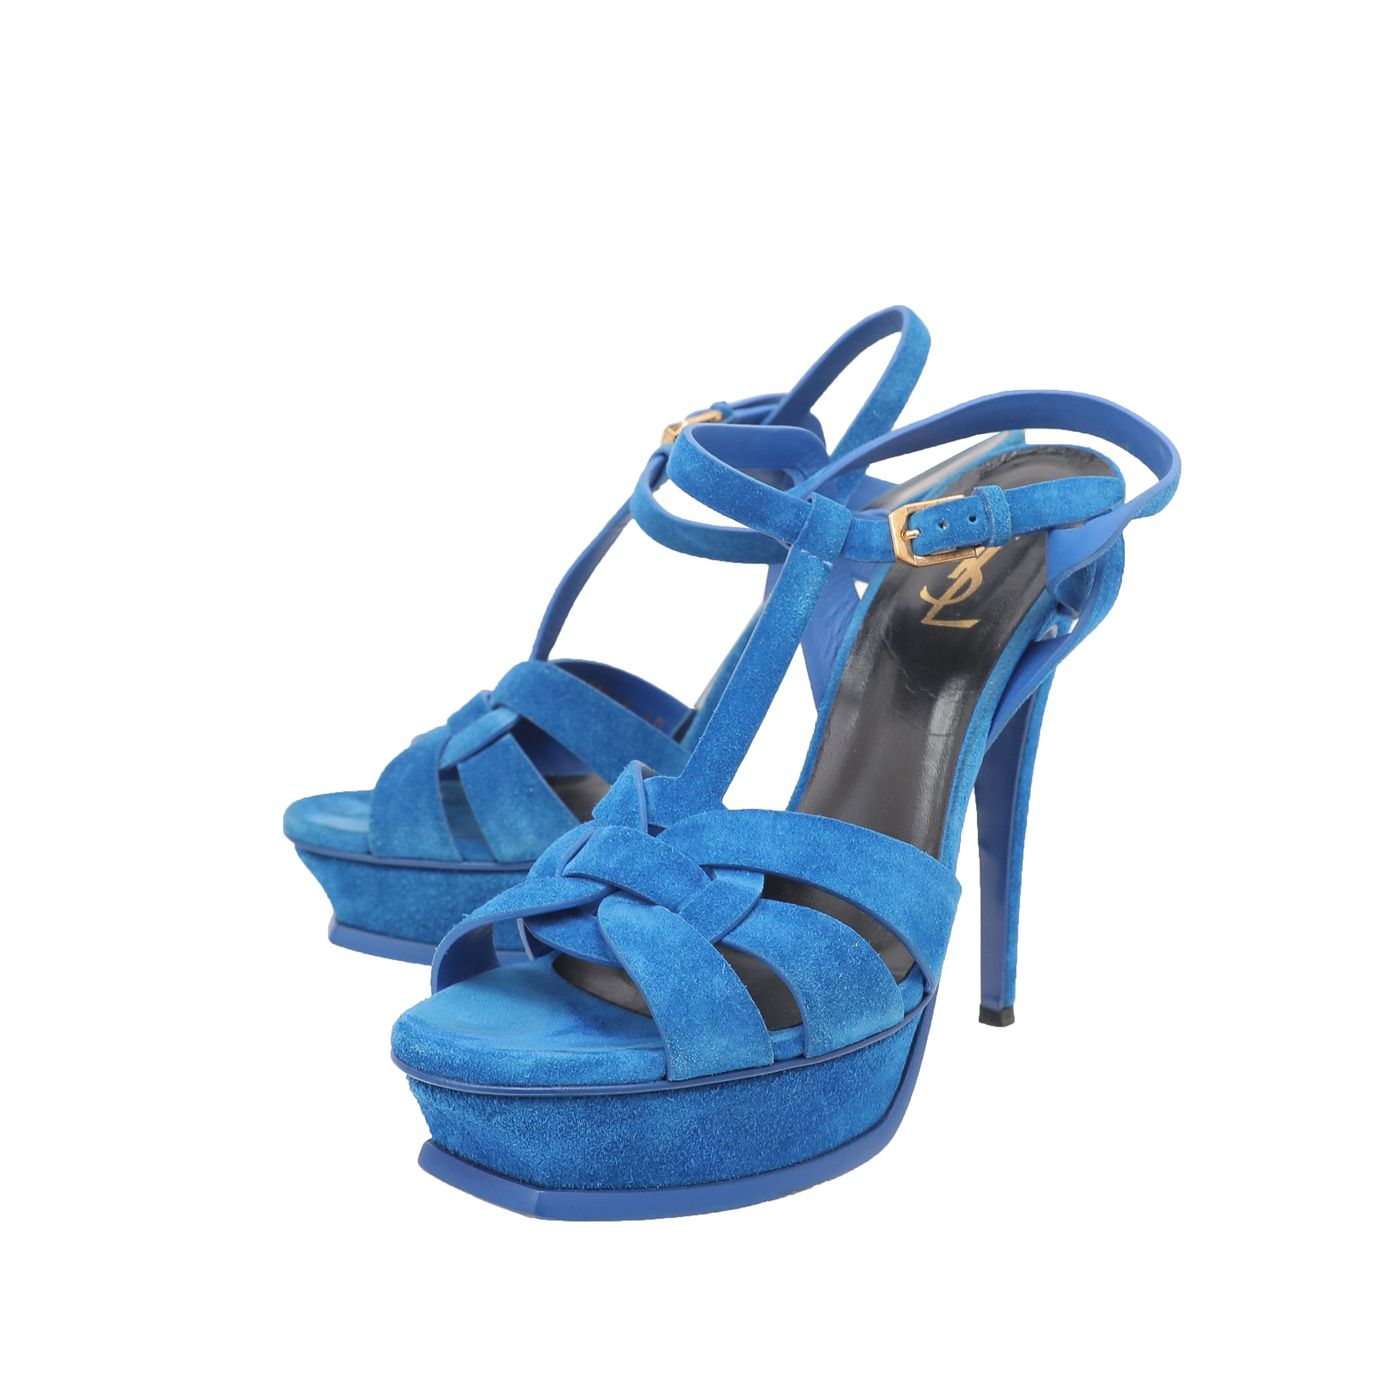 YSL Royal Blue Velvet Tribute Sandals 40